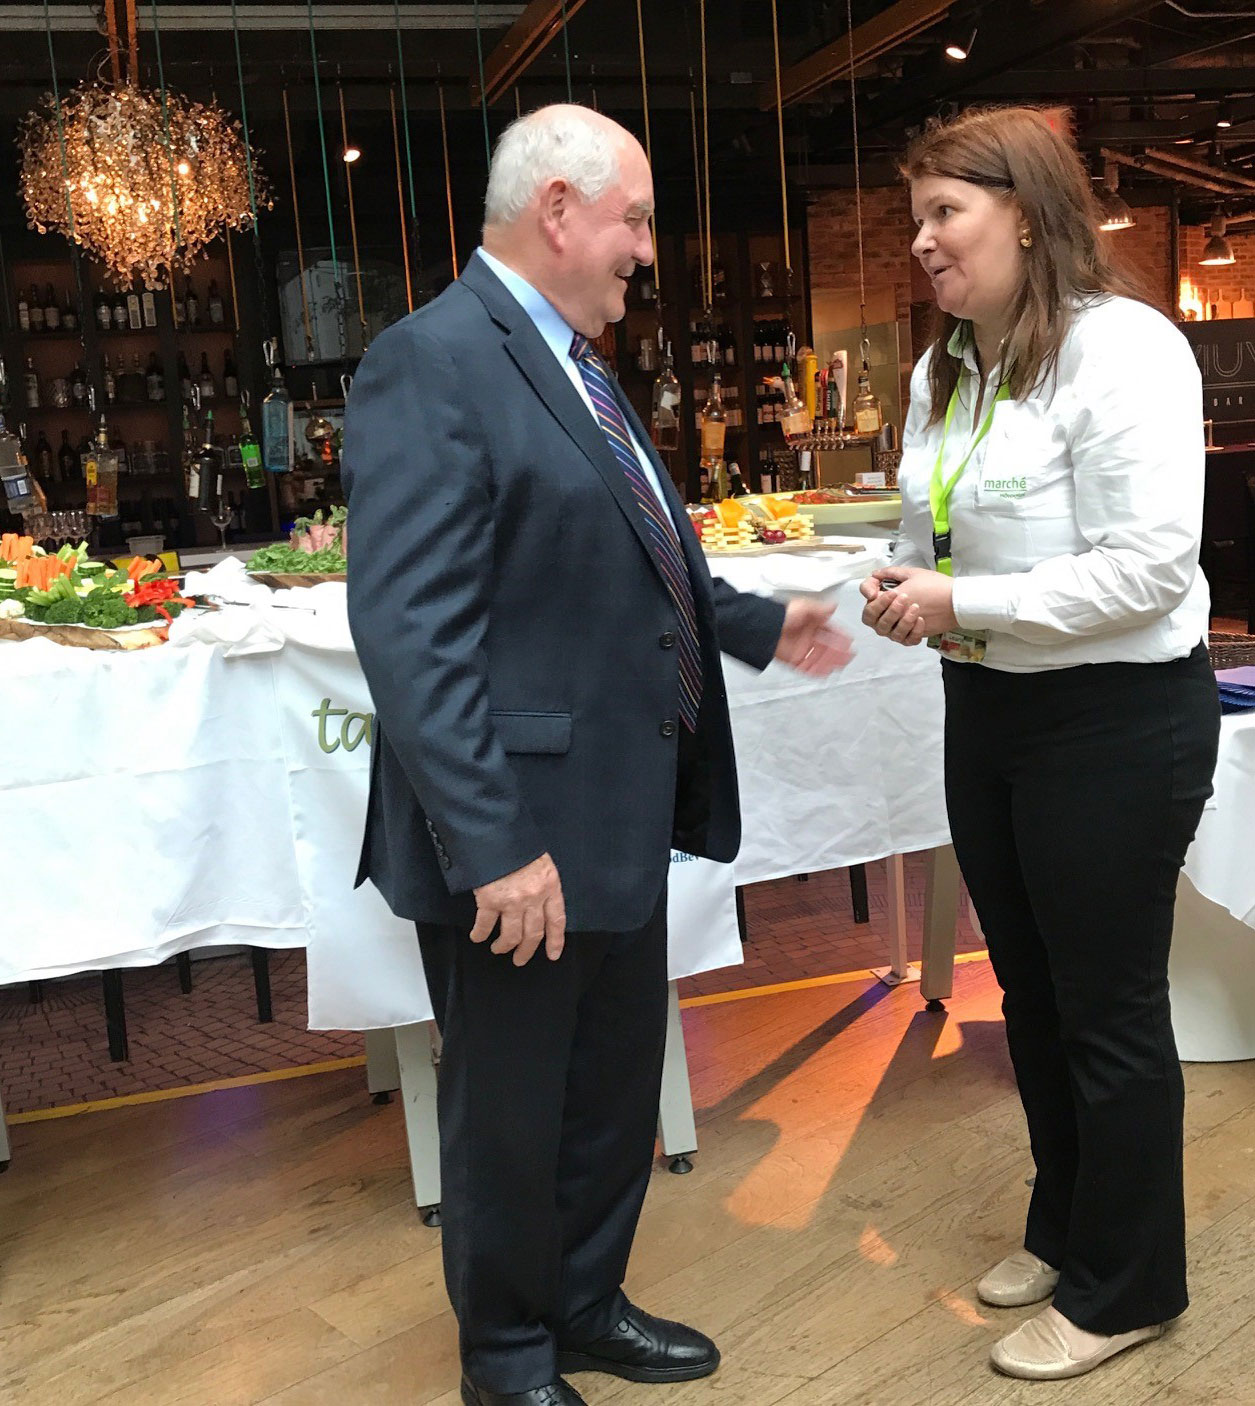 IP.w-Secy-Perdue-at-FAS-event-in-Canada-170607